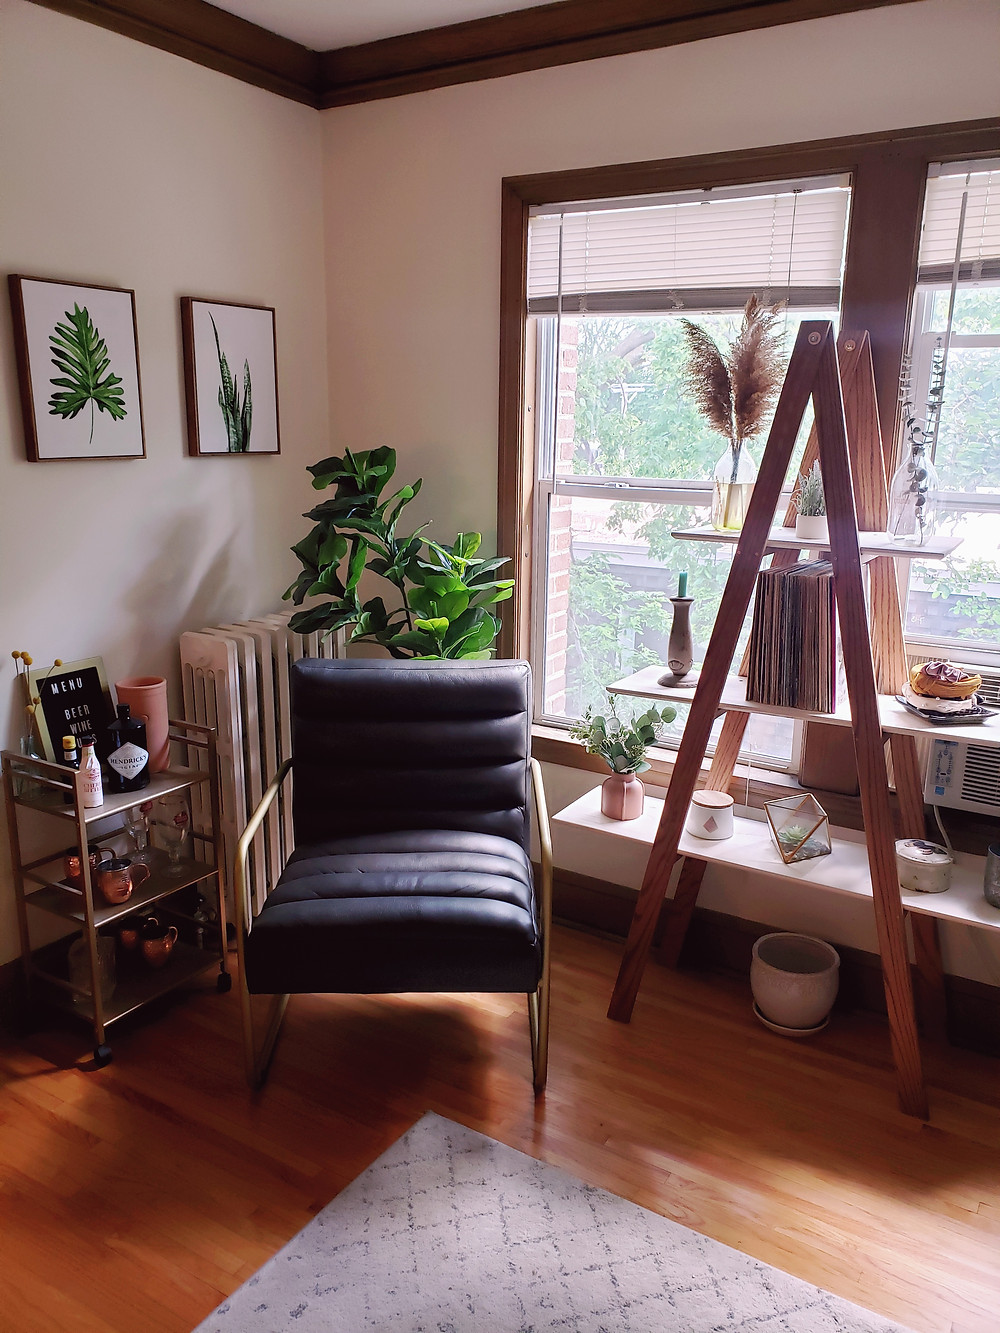 I LOVE how big the windows are in my studio. With lots of greenery right outside, I wanted to designate this corner to be an outside oasis sort of feel. Lots of natural lighting for reading:)